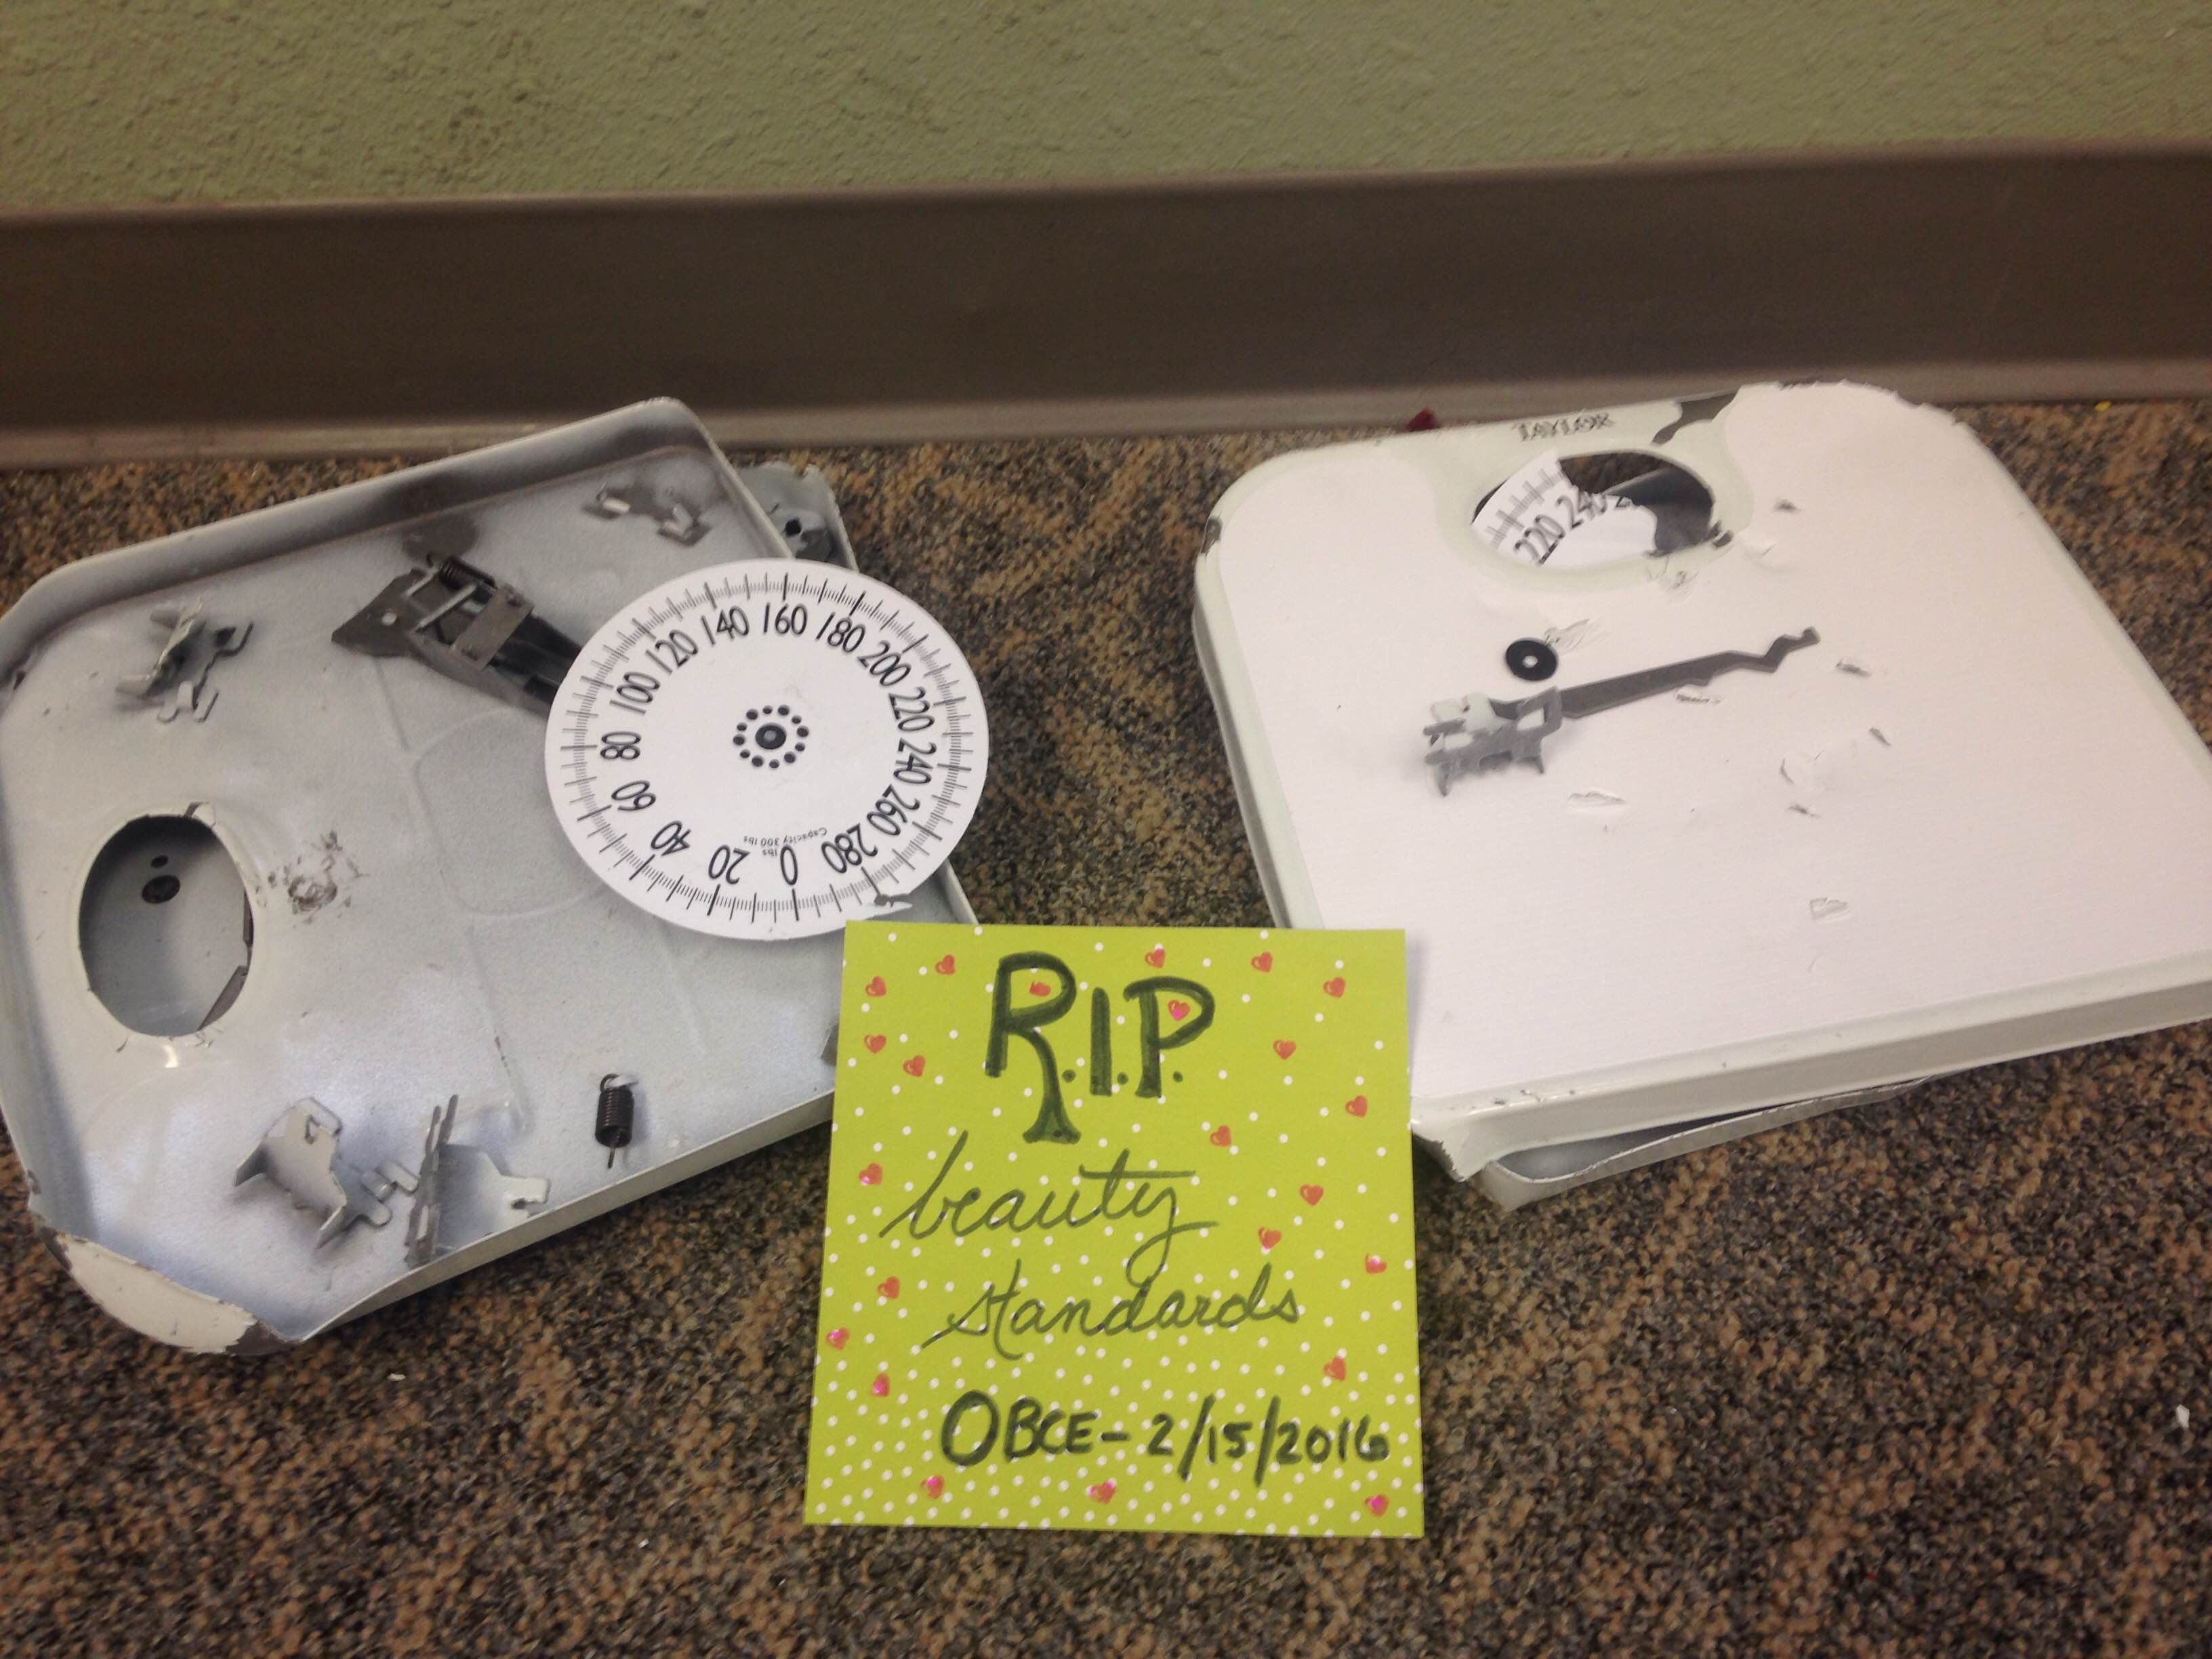 The aftermath of our scale smash! This was an event in Love Your Body Week, co-hosted by SMC Patch.